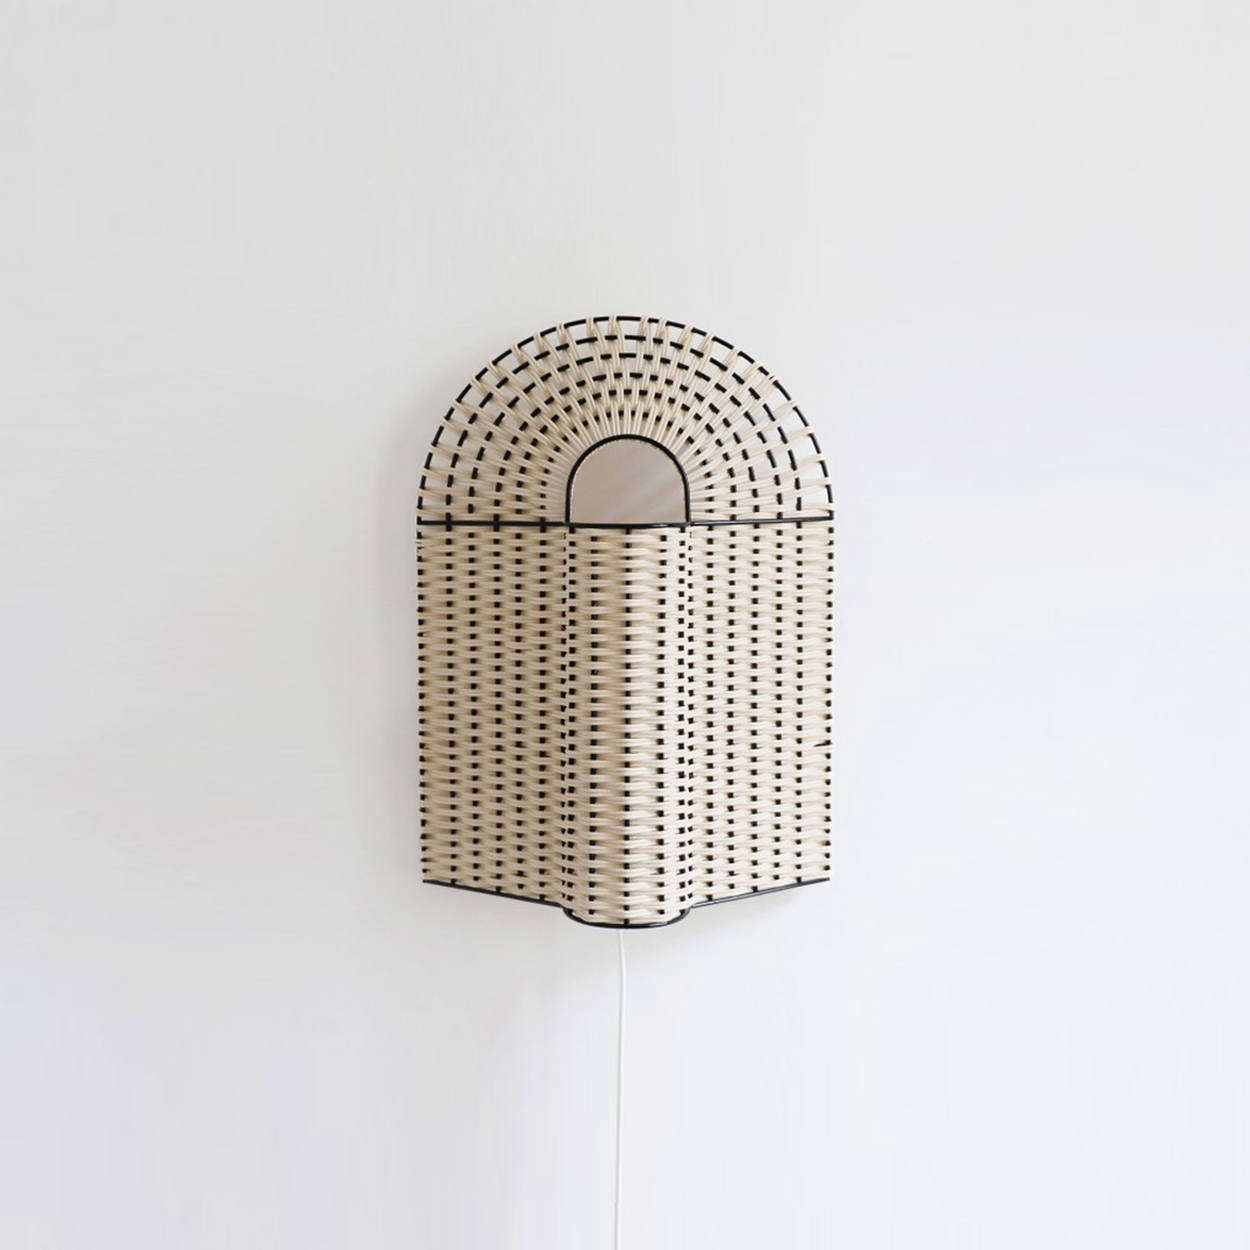 The Paon Medium Lamp in Natural Rattan with black lacquered metal is €335. The lamp can sit on a mantel or table, as shown, or comes with a metal hanging piece to mount on the wall.